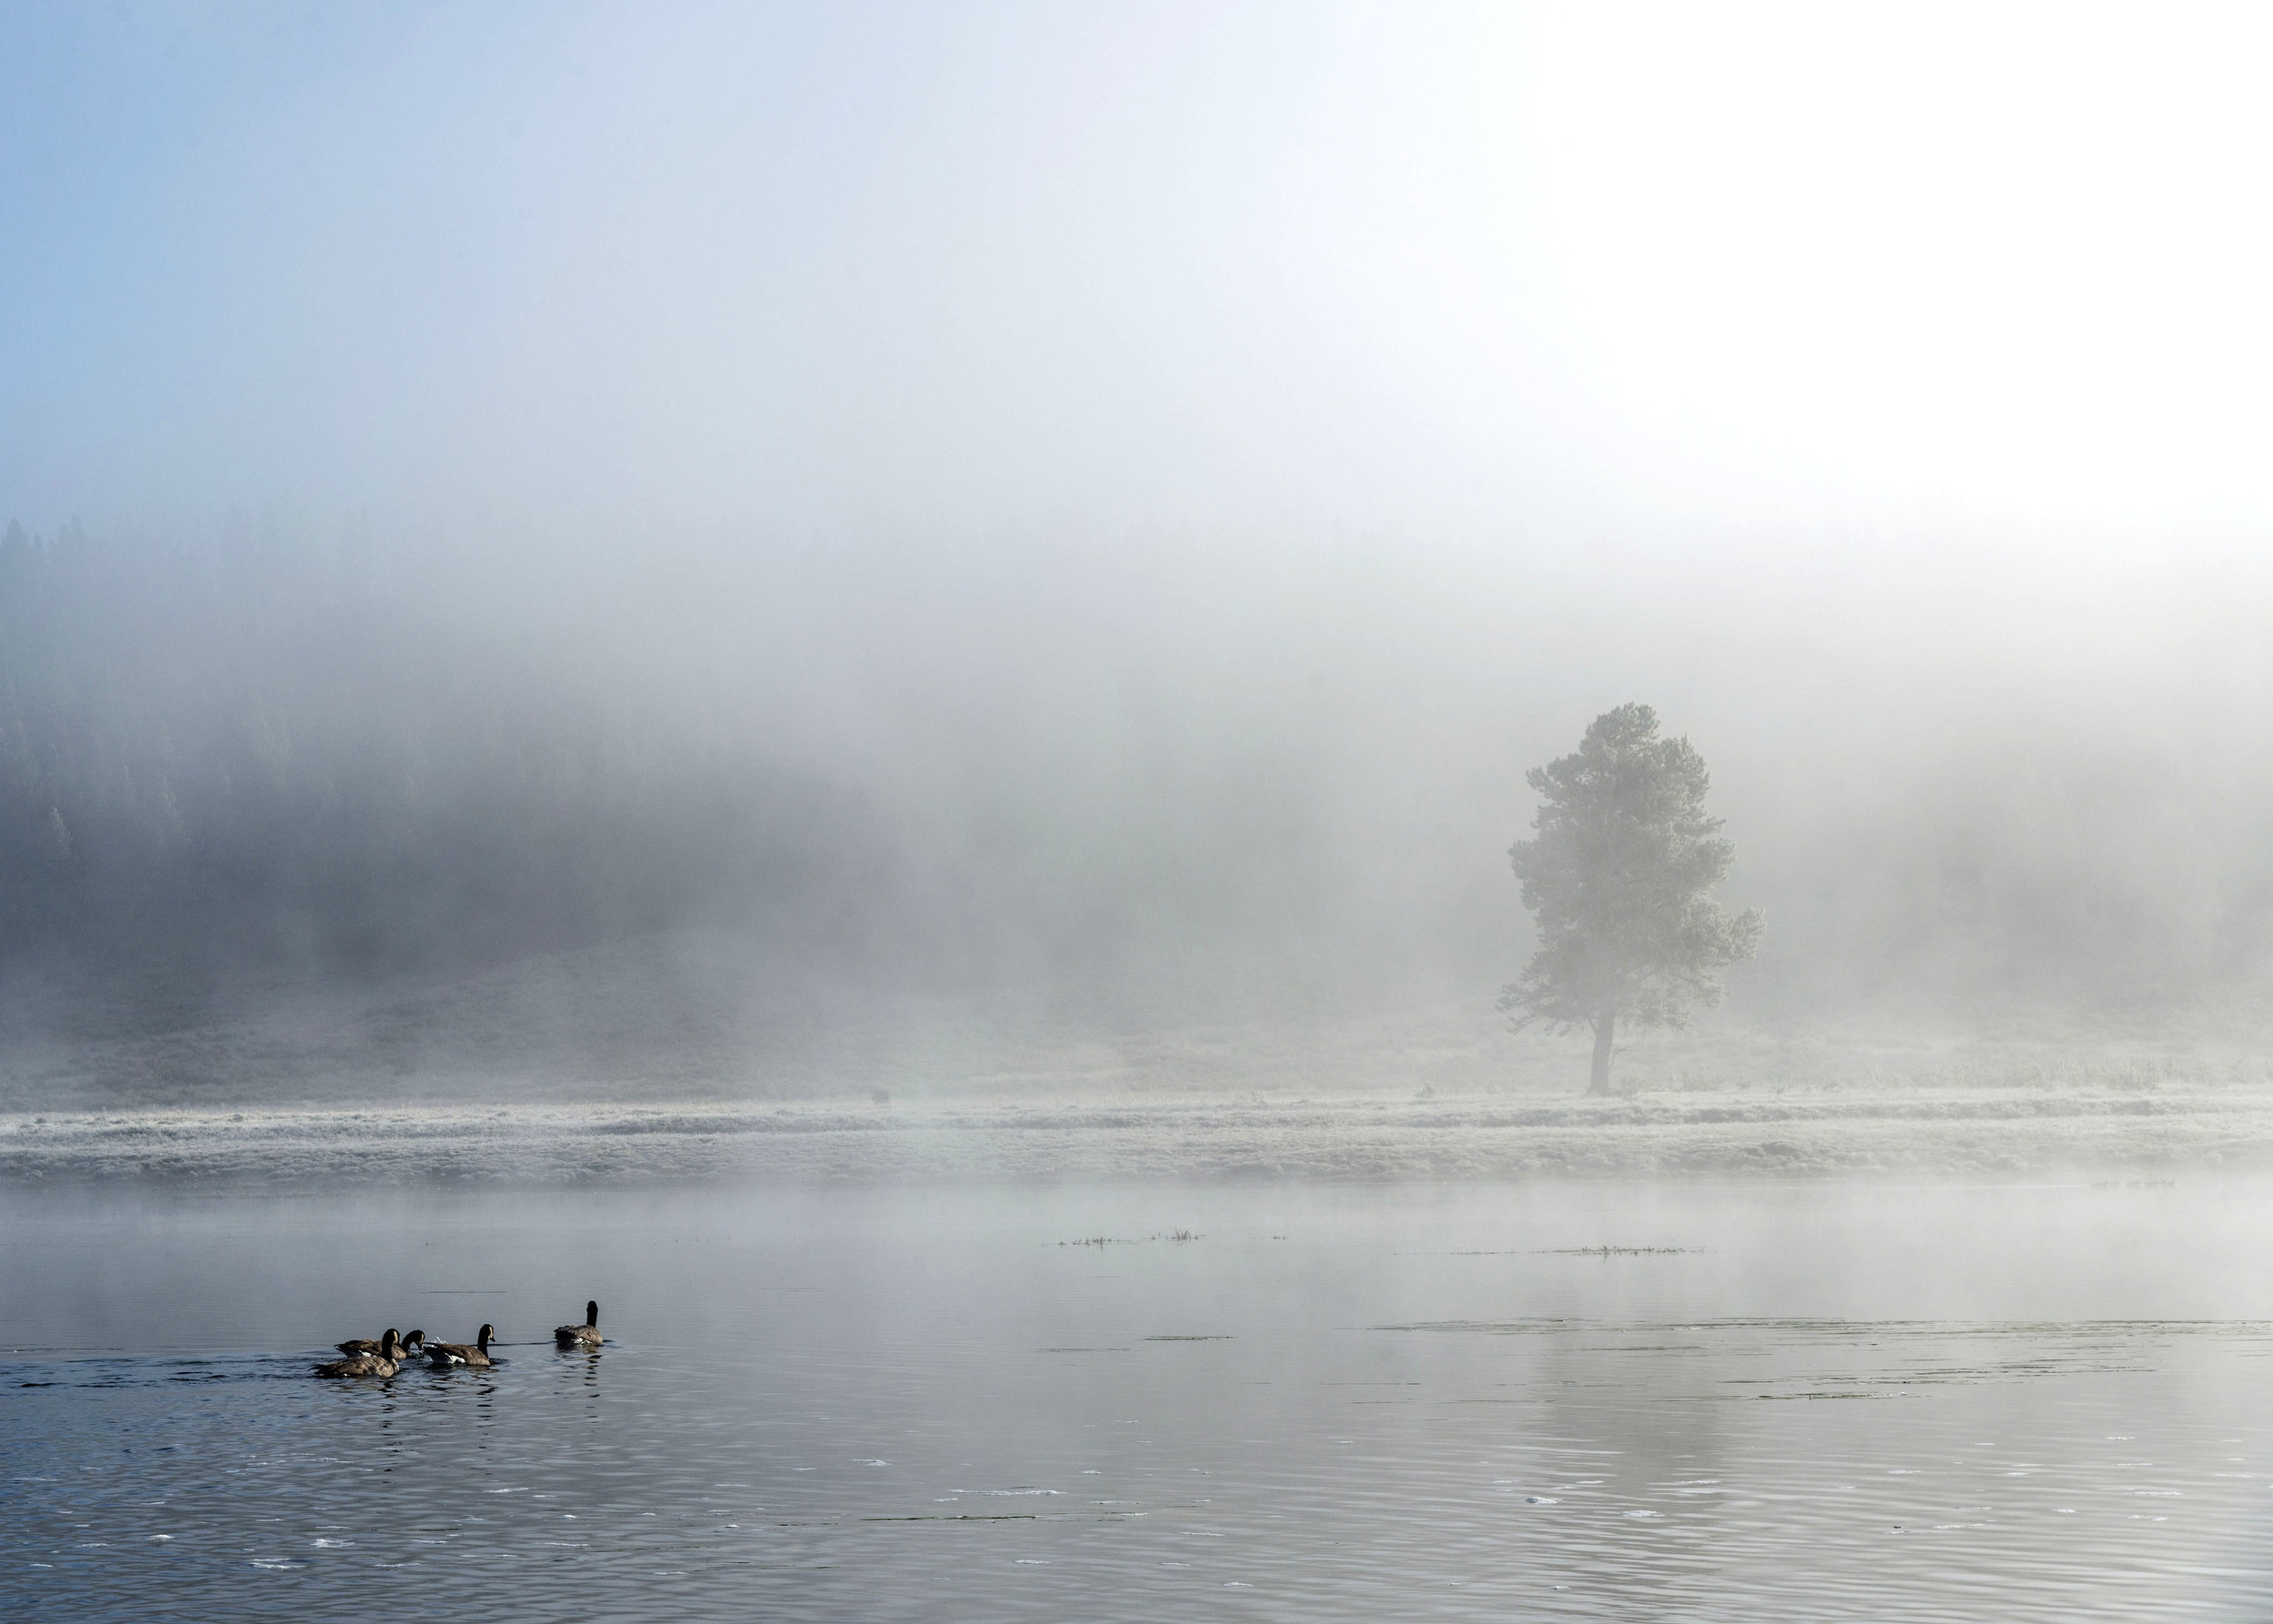 Canadian Geese swim across the Yellowstone River shortly after dawn. Nikon D800, Nikkor 24-120mm lens @ 70mm, ISO 200, f10, 1/400 sec.